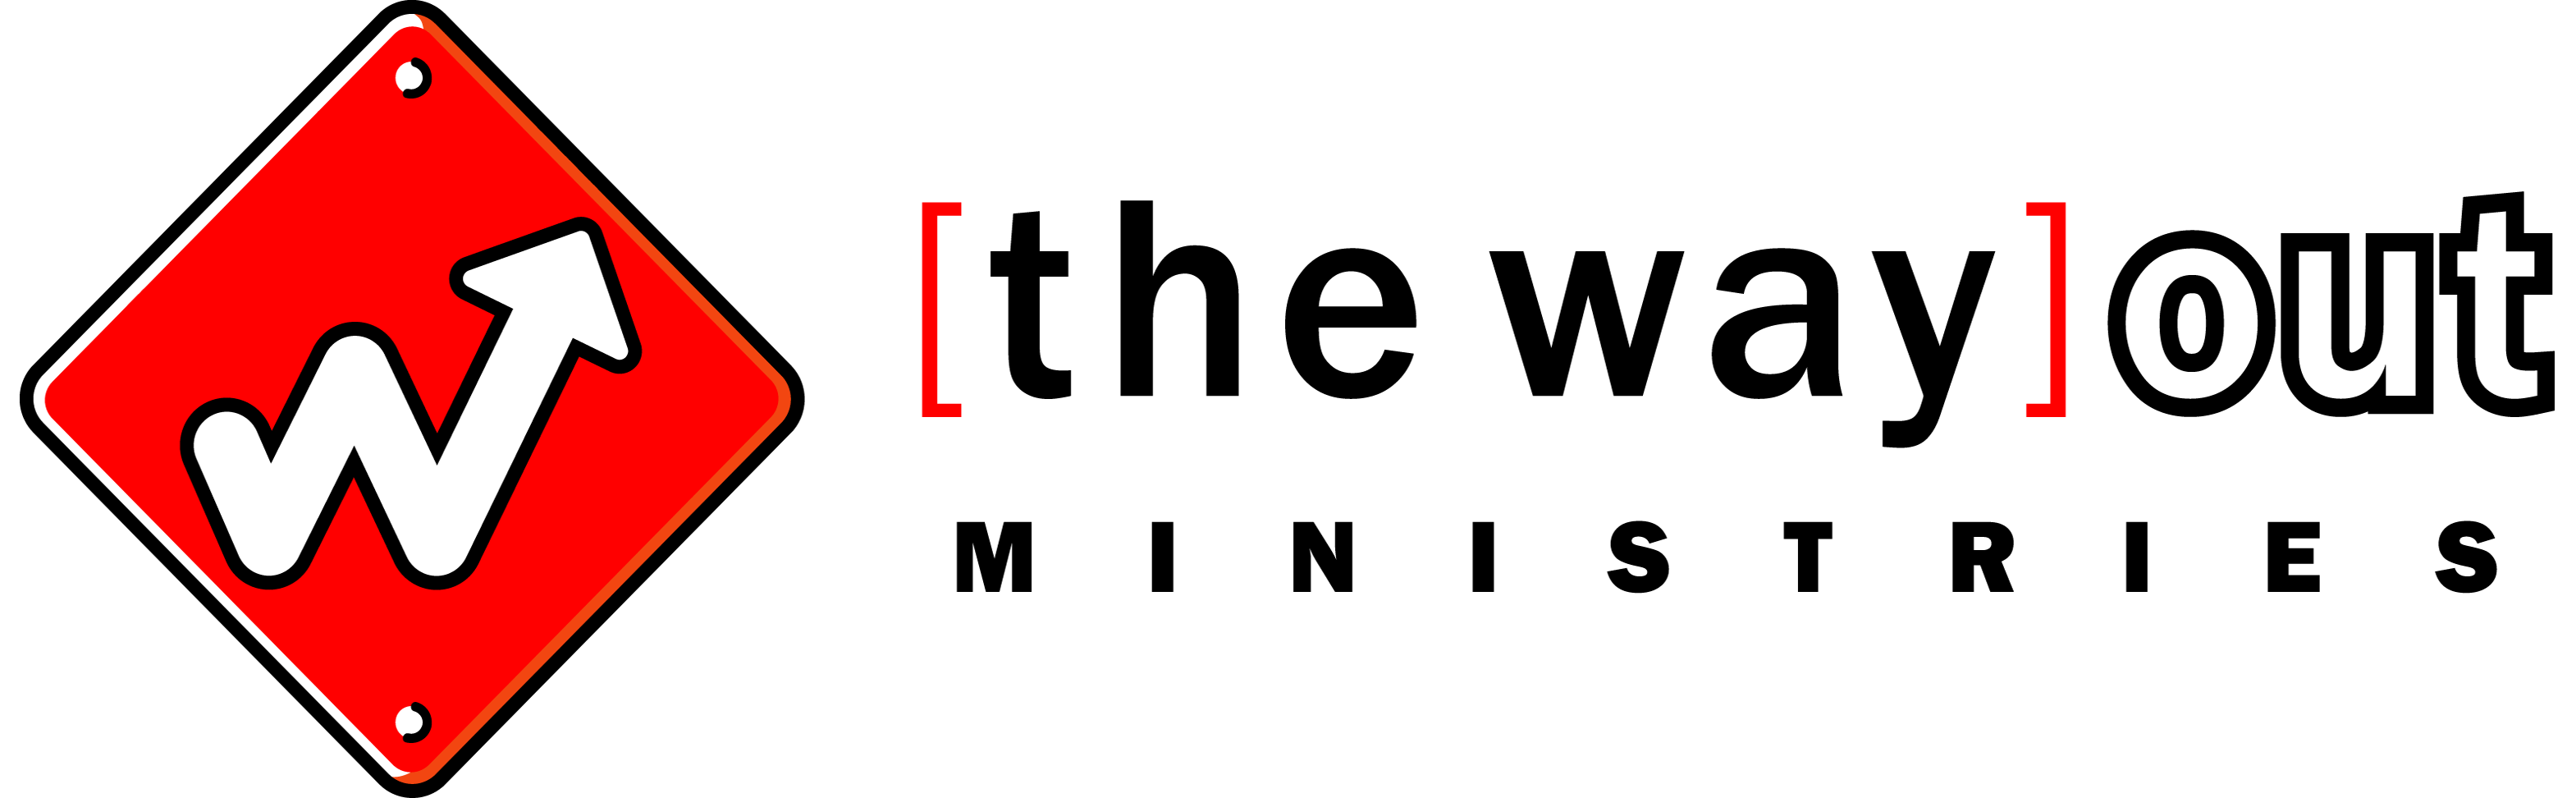 The Way Out Ministries